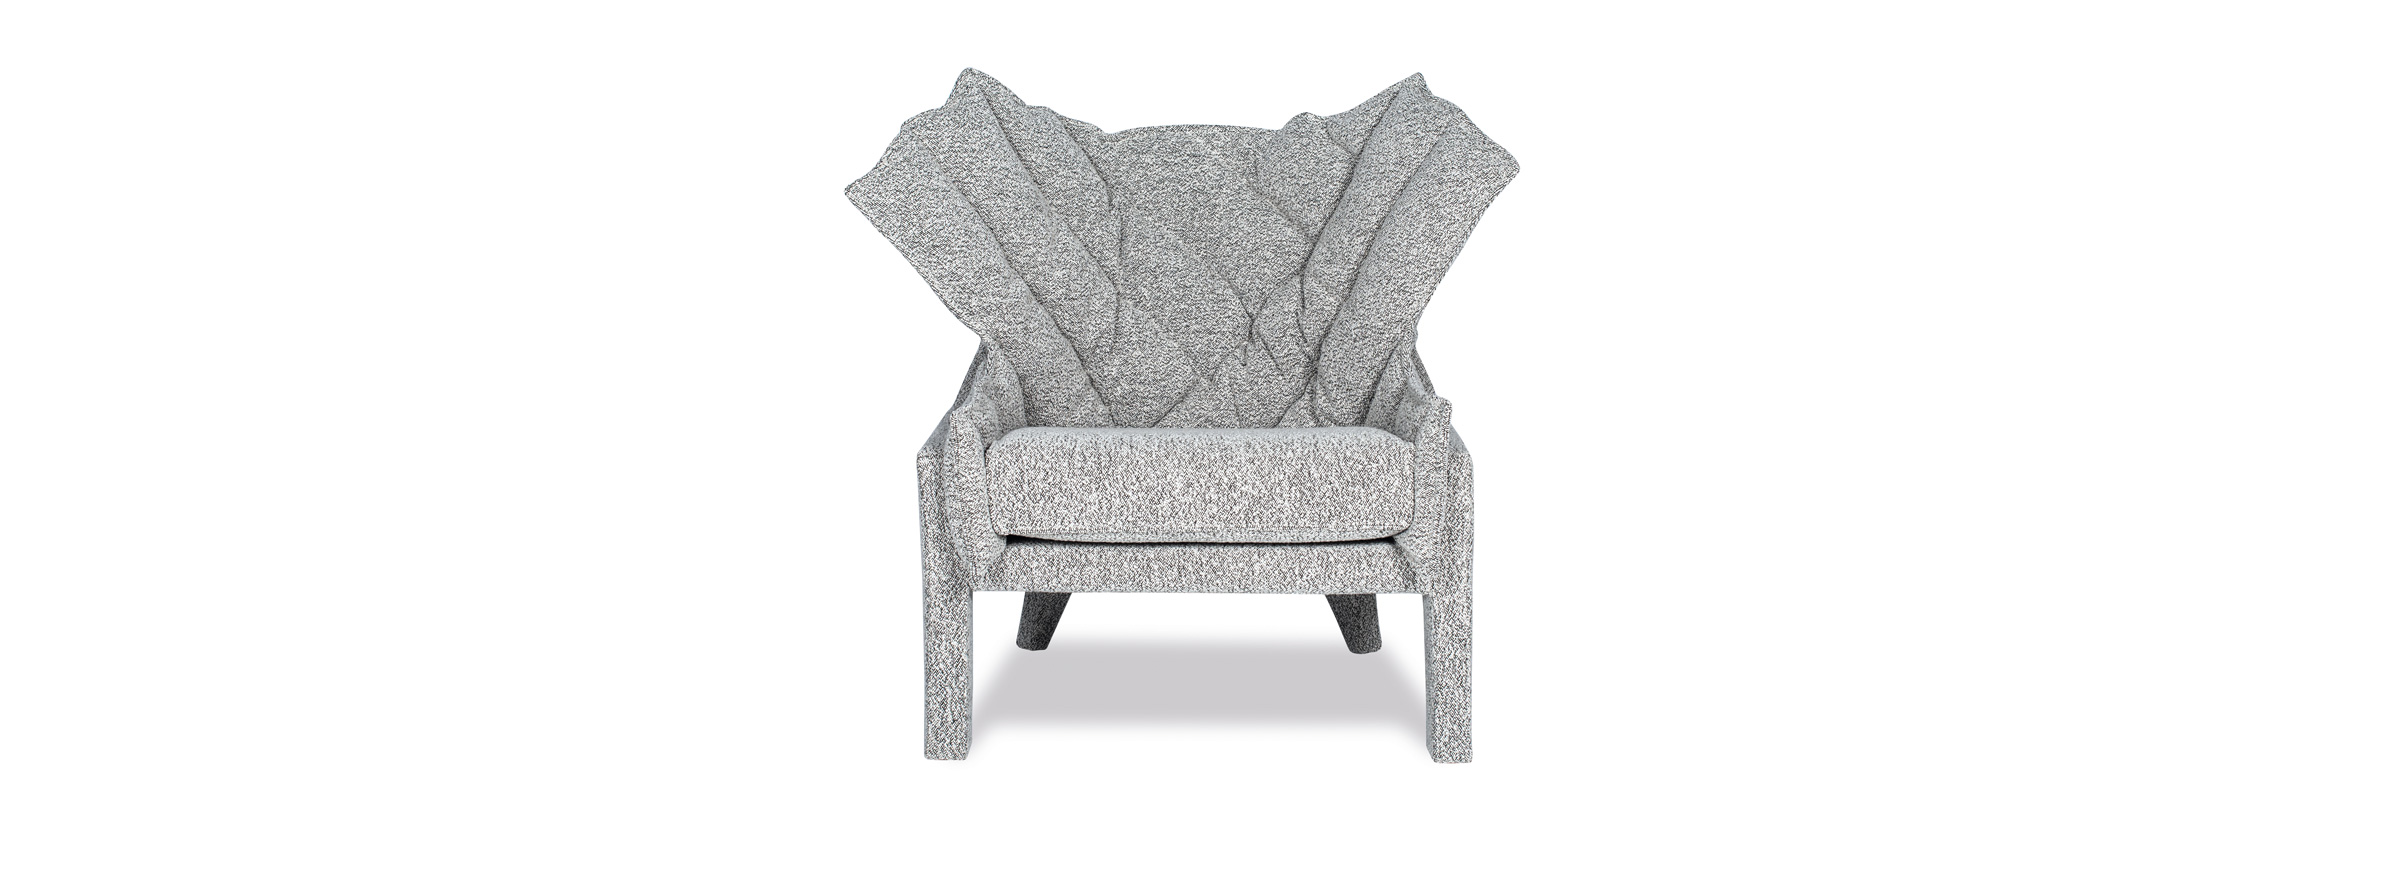 Désio-TWIST-fauteuil-personnalisable-made-in-france-tissu-architecte-ambiance